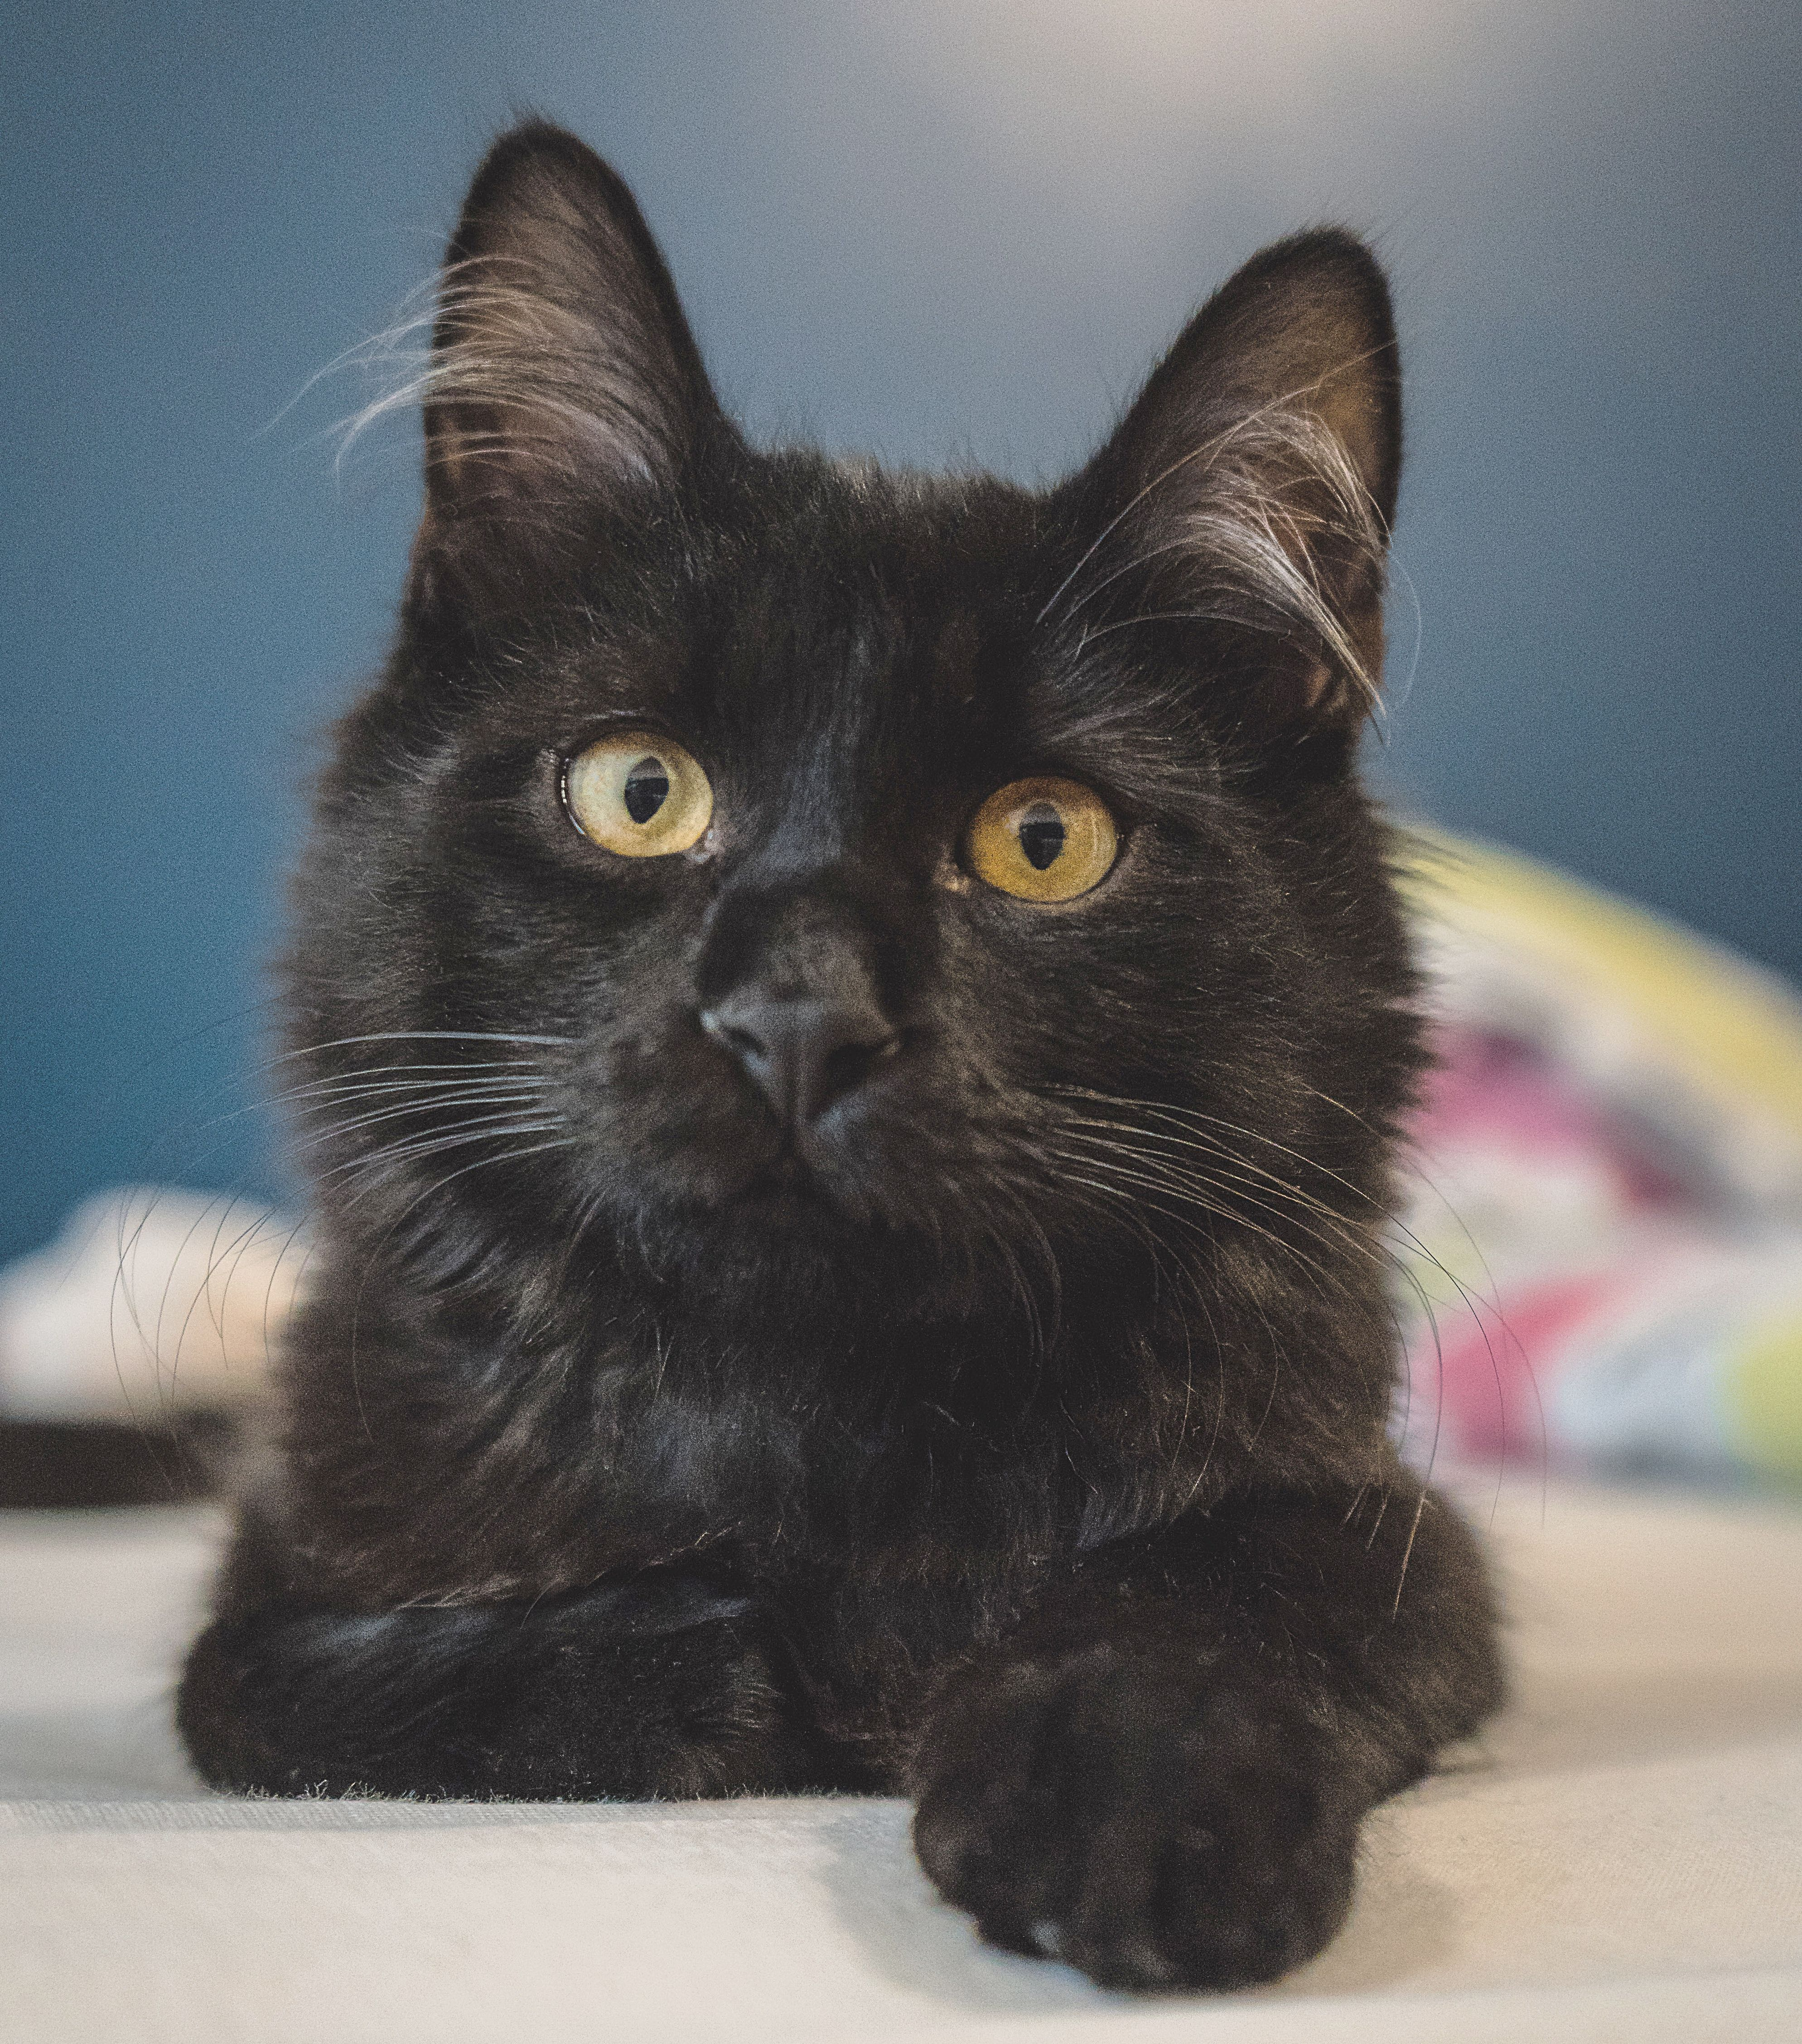 Its National Cat Day We Love Black Cats Especially In October Thank You For Sharing Andrazlazic Com National Cat Day Animals Cats